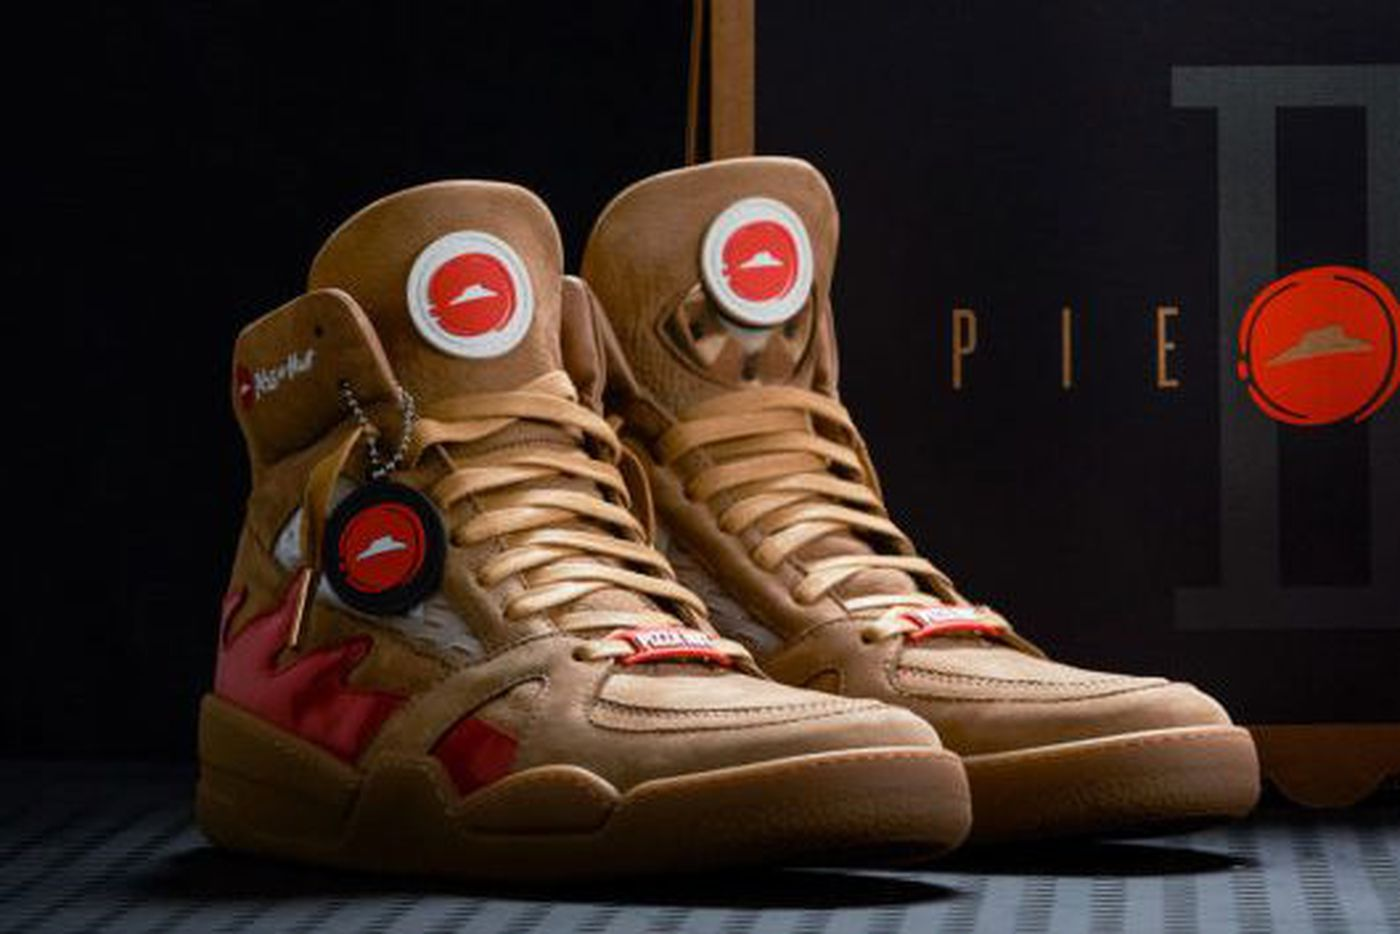 This is not a joke: The sneakers that order pizza for you | Lisa Scottoline